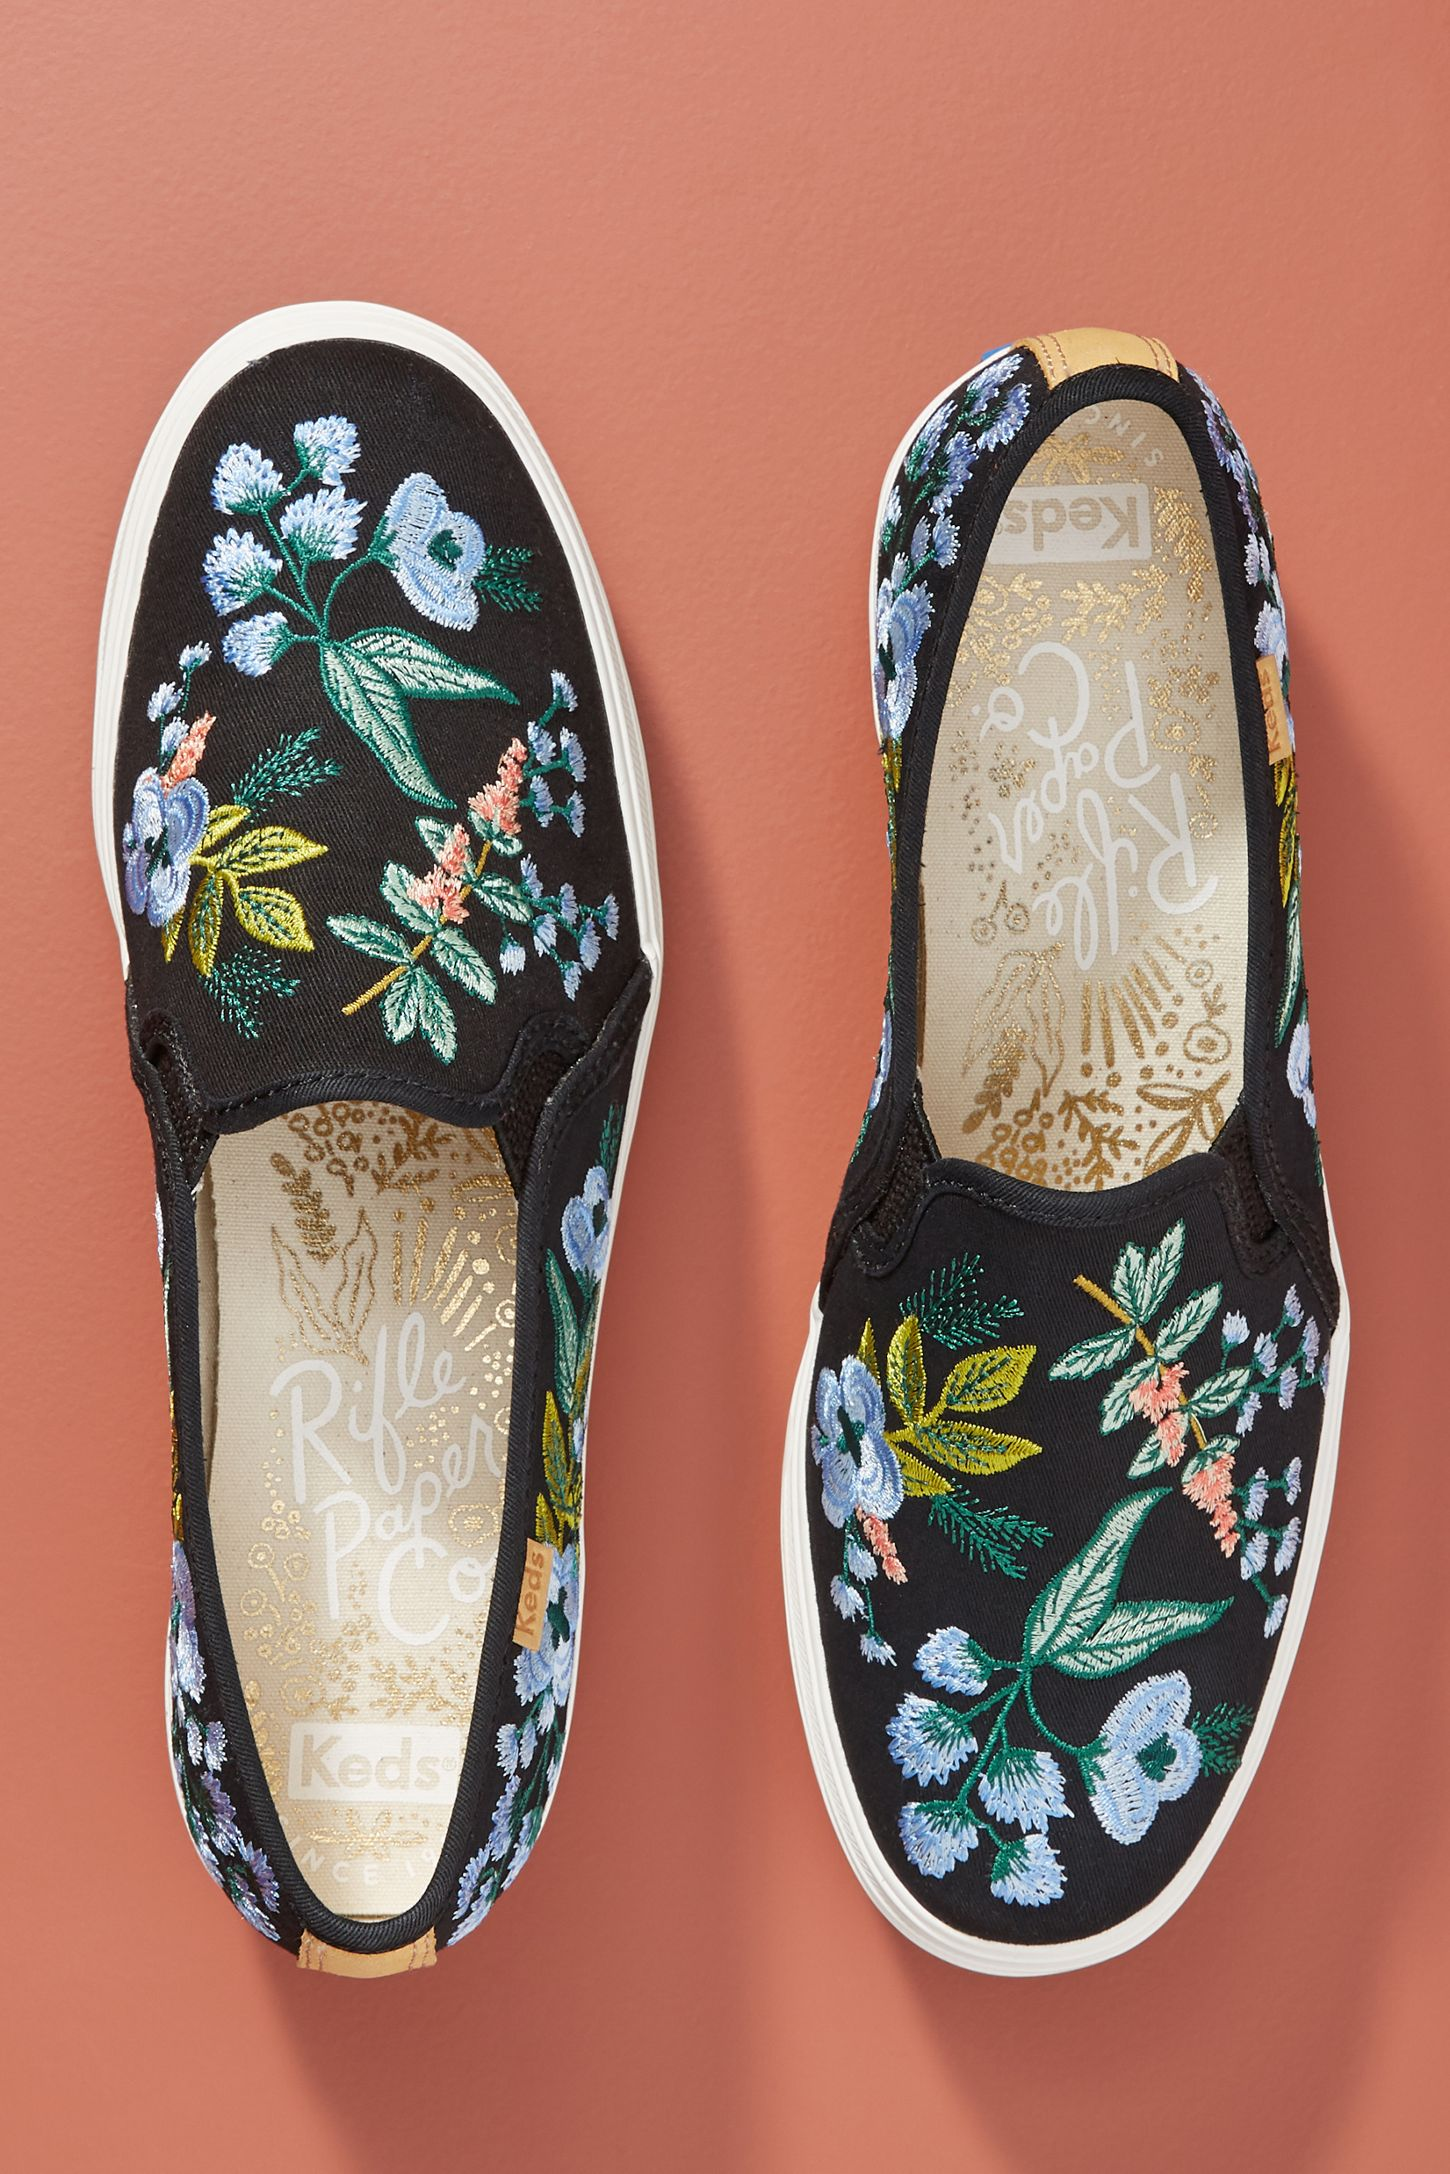 10d8153c862 Keds x Rifle Paper Co. Triple Decker Embroidered Herb Garden Sneakers. Tap  image to zoom. Hover your mouse over an image to zoom. Double Tap to Zoom